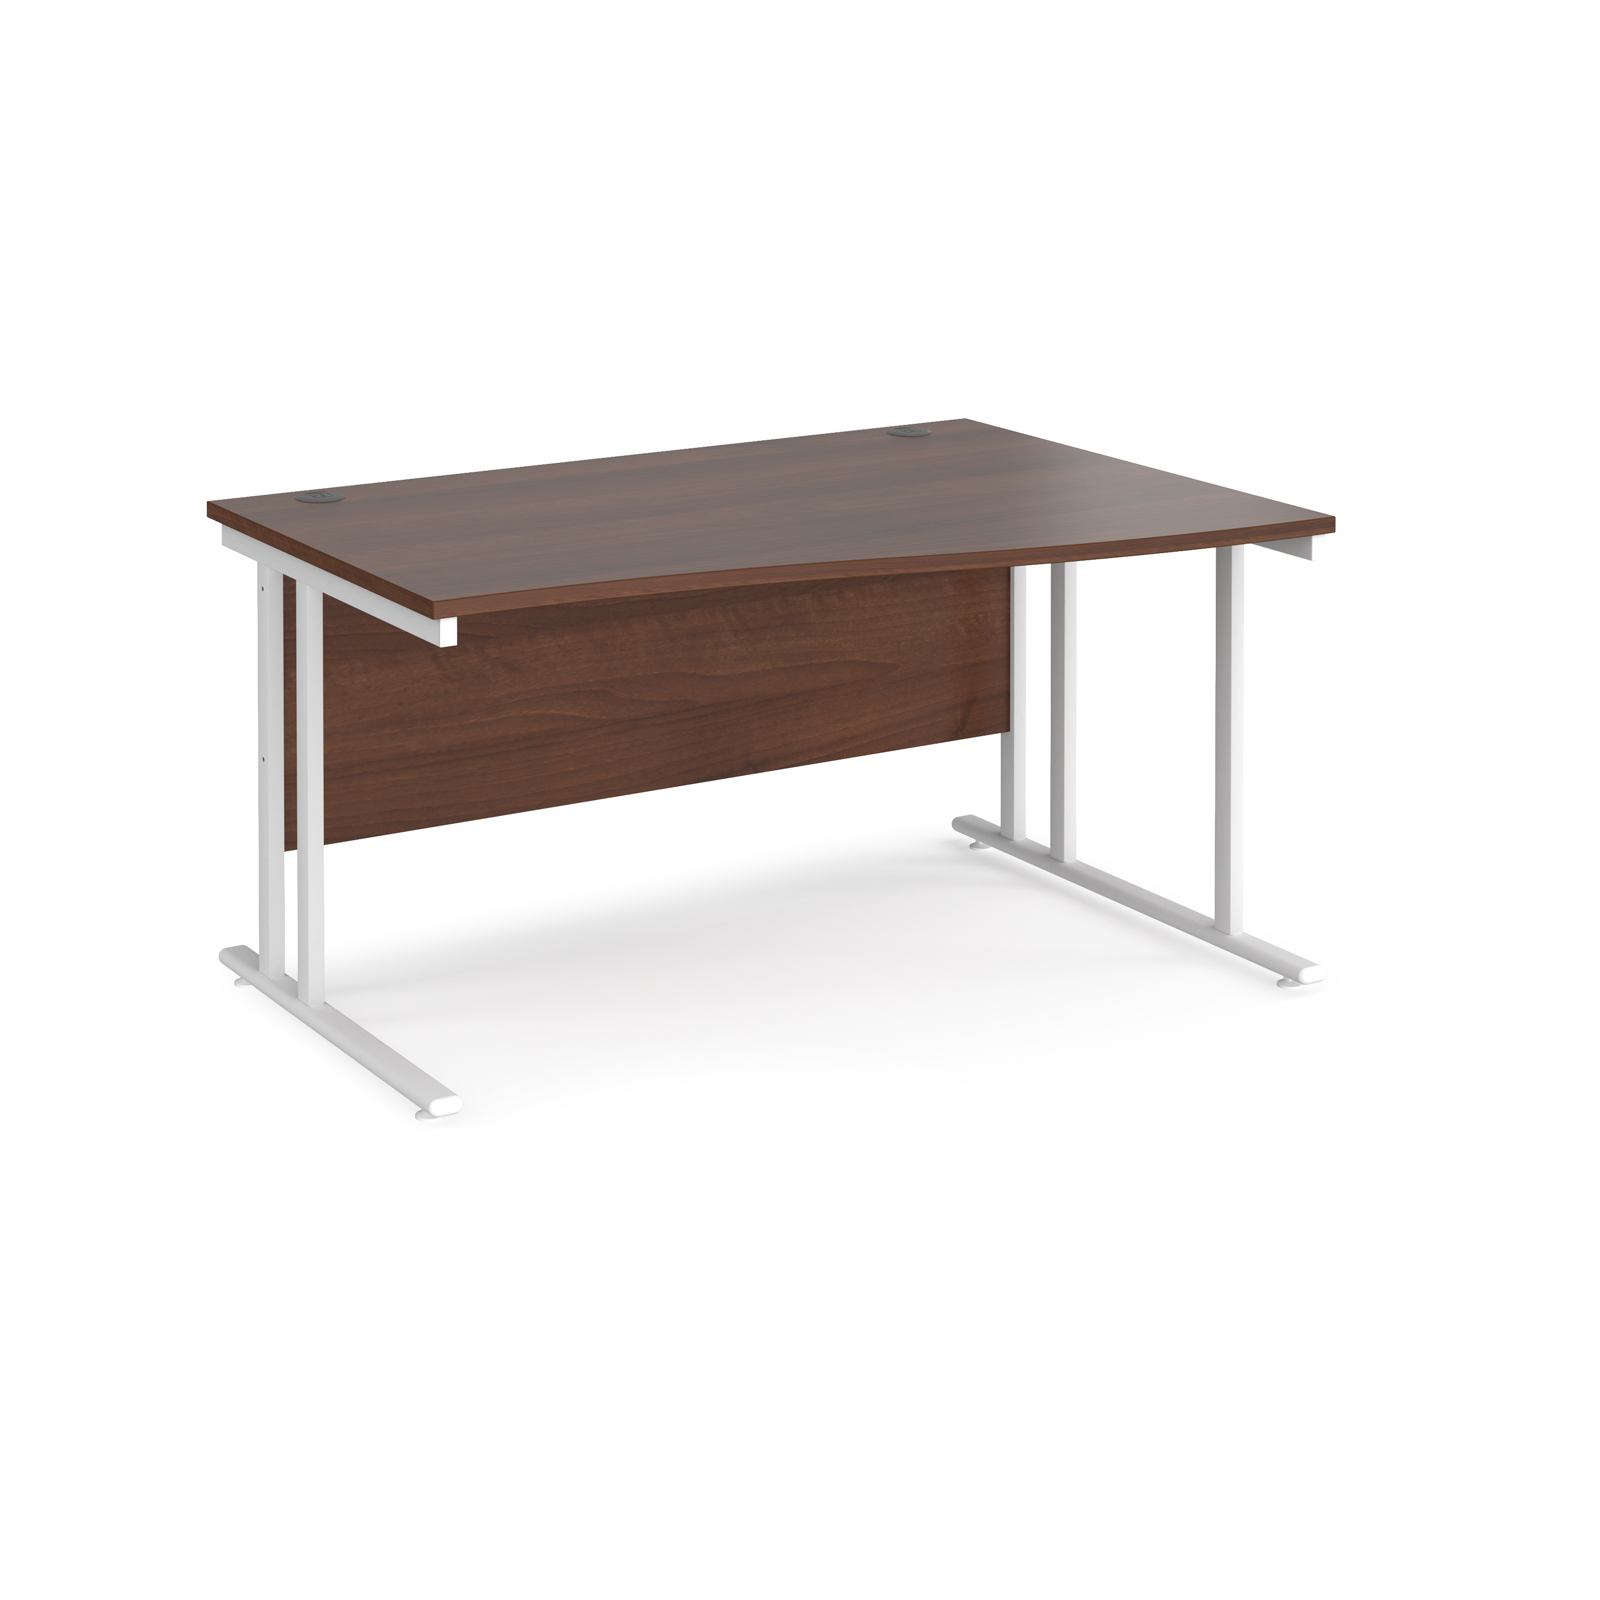 Maestro 25 right hand wave desk 1400mm wide - white cantilever leg frame, walnut top